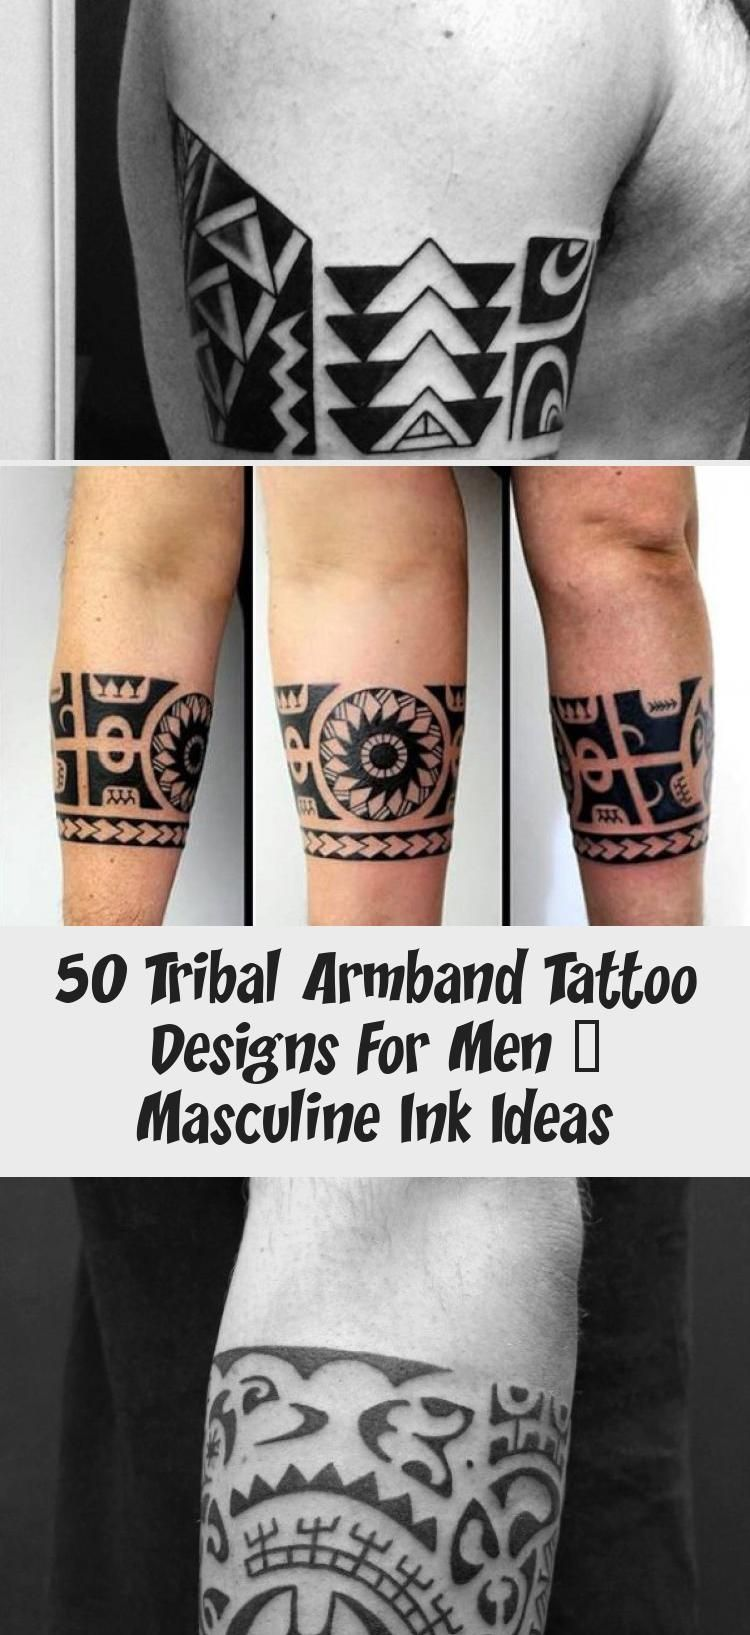 50 Tribal Armband Tattoo Designs For Men Masculine Ink Ideas Tattoos And Body Art In 2020 Tribal Armband Tattoo Tribal Armband Armband Tattoo Design